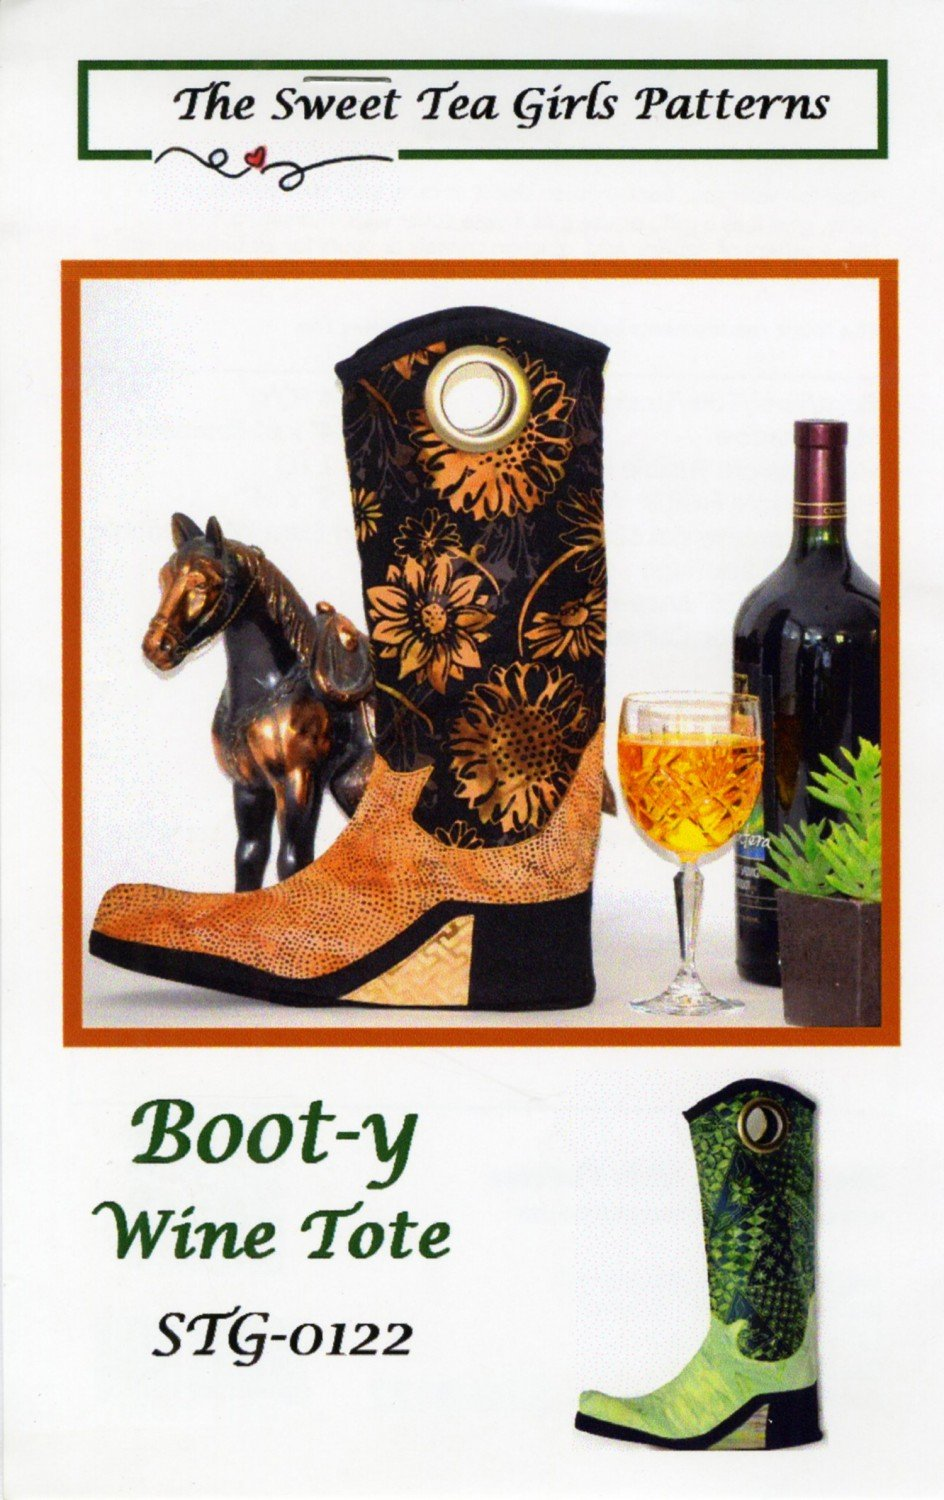 Boot-y Wine Tote